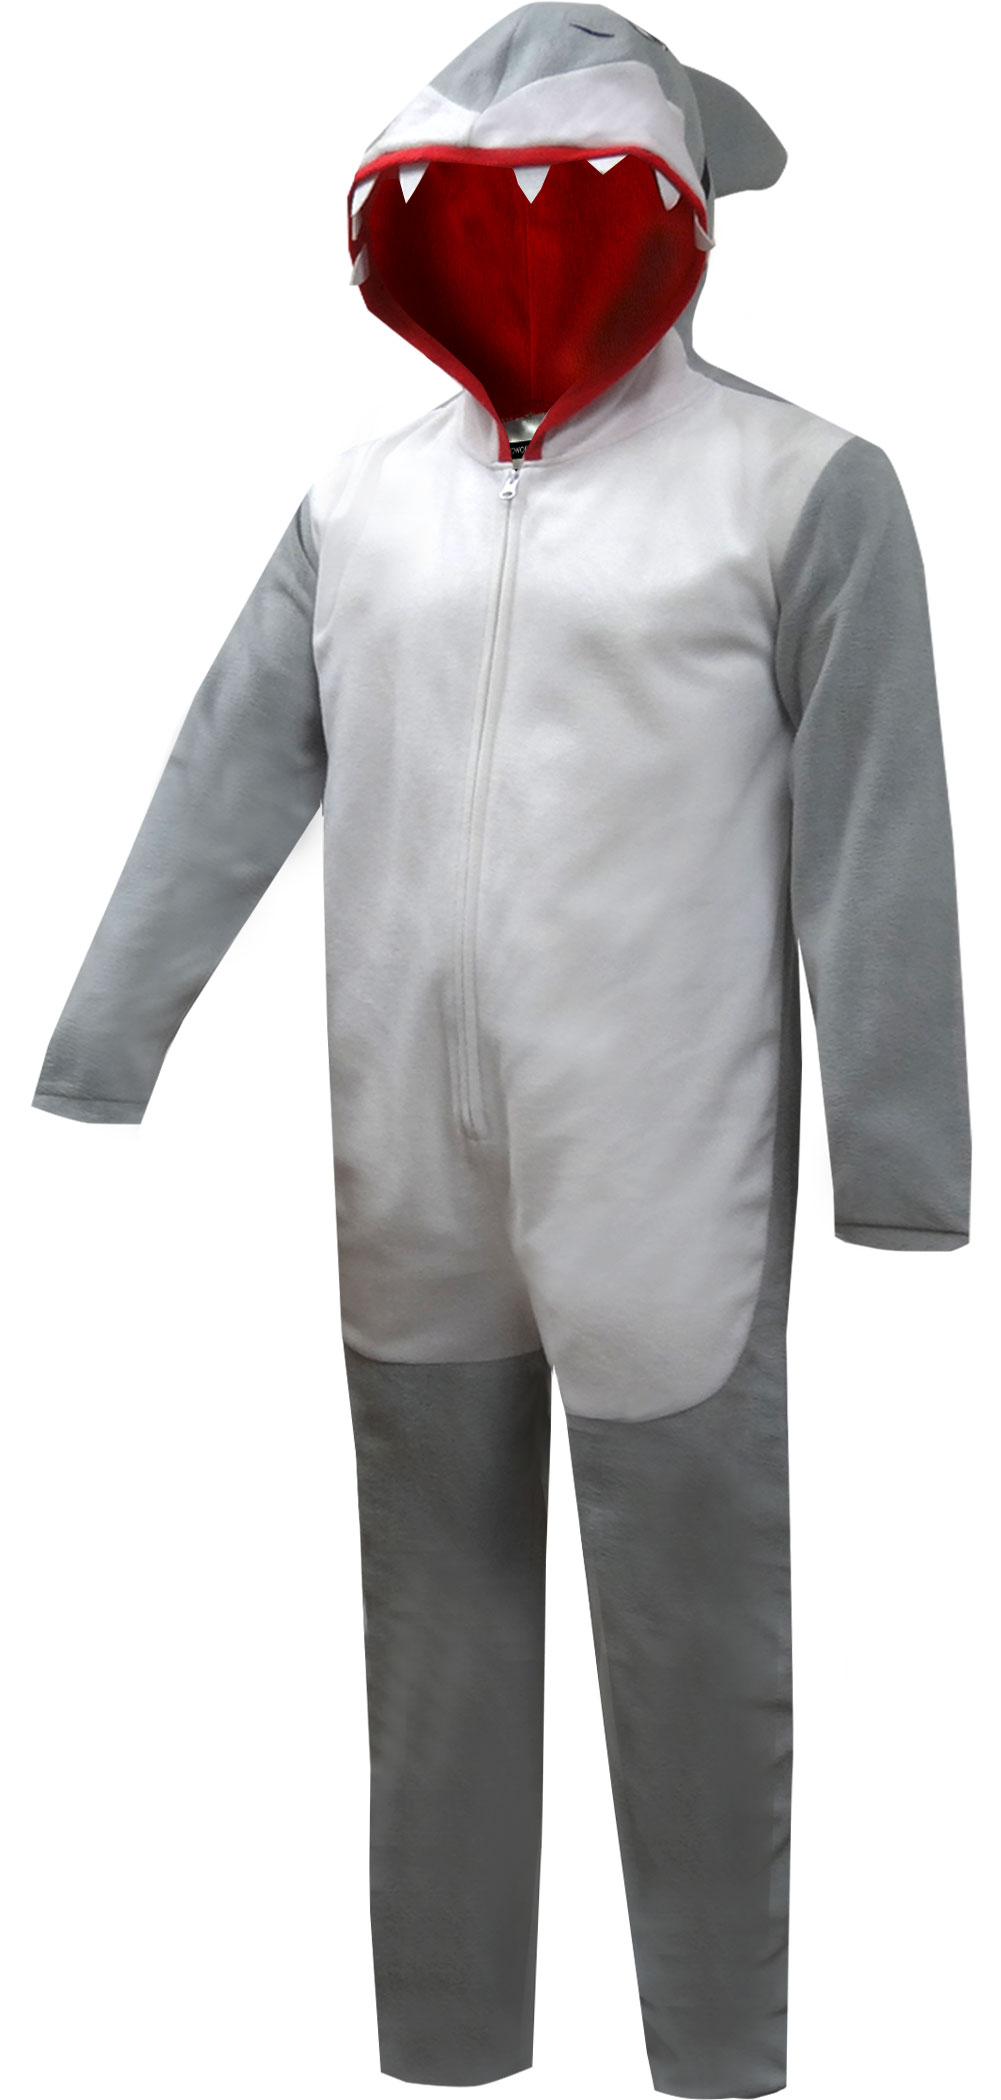 91a1e4023 Footie Pajamas for Men- Adult Footed Pajamas and Union Suits